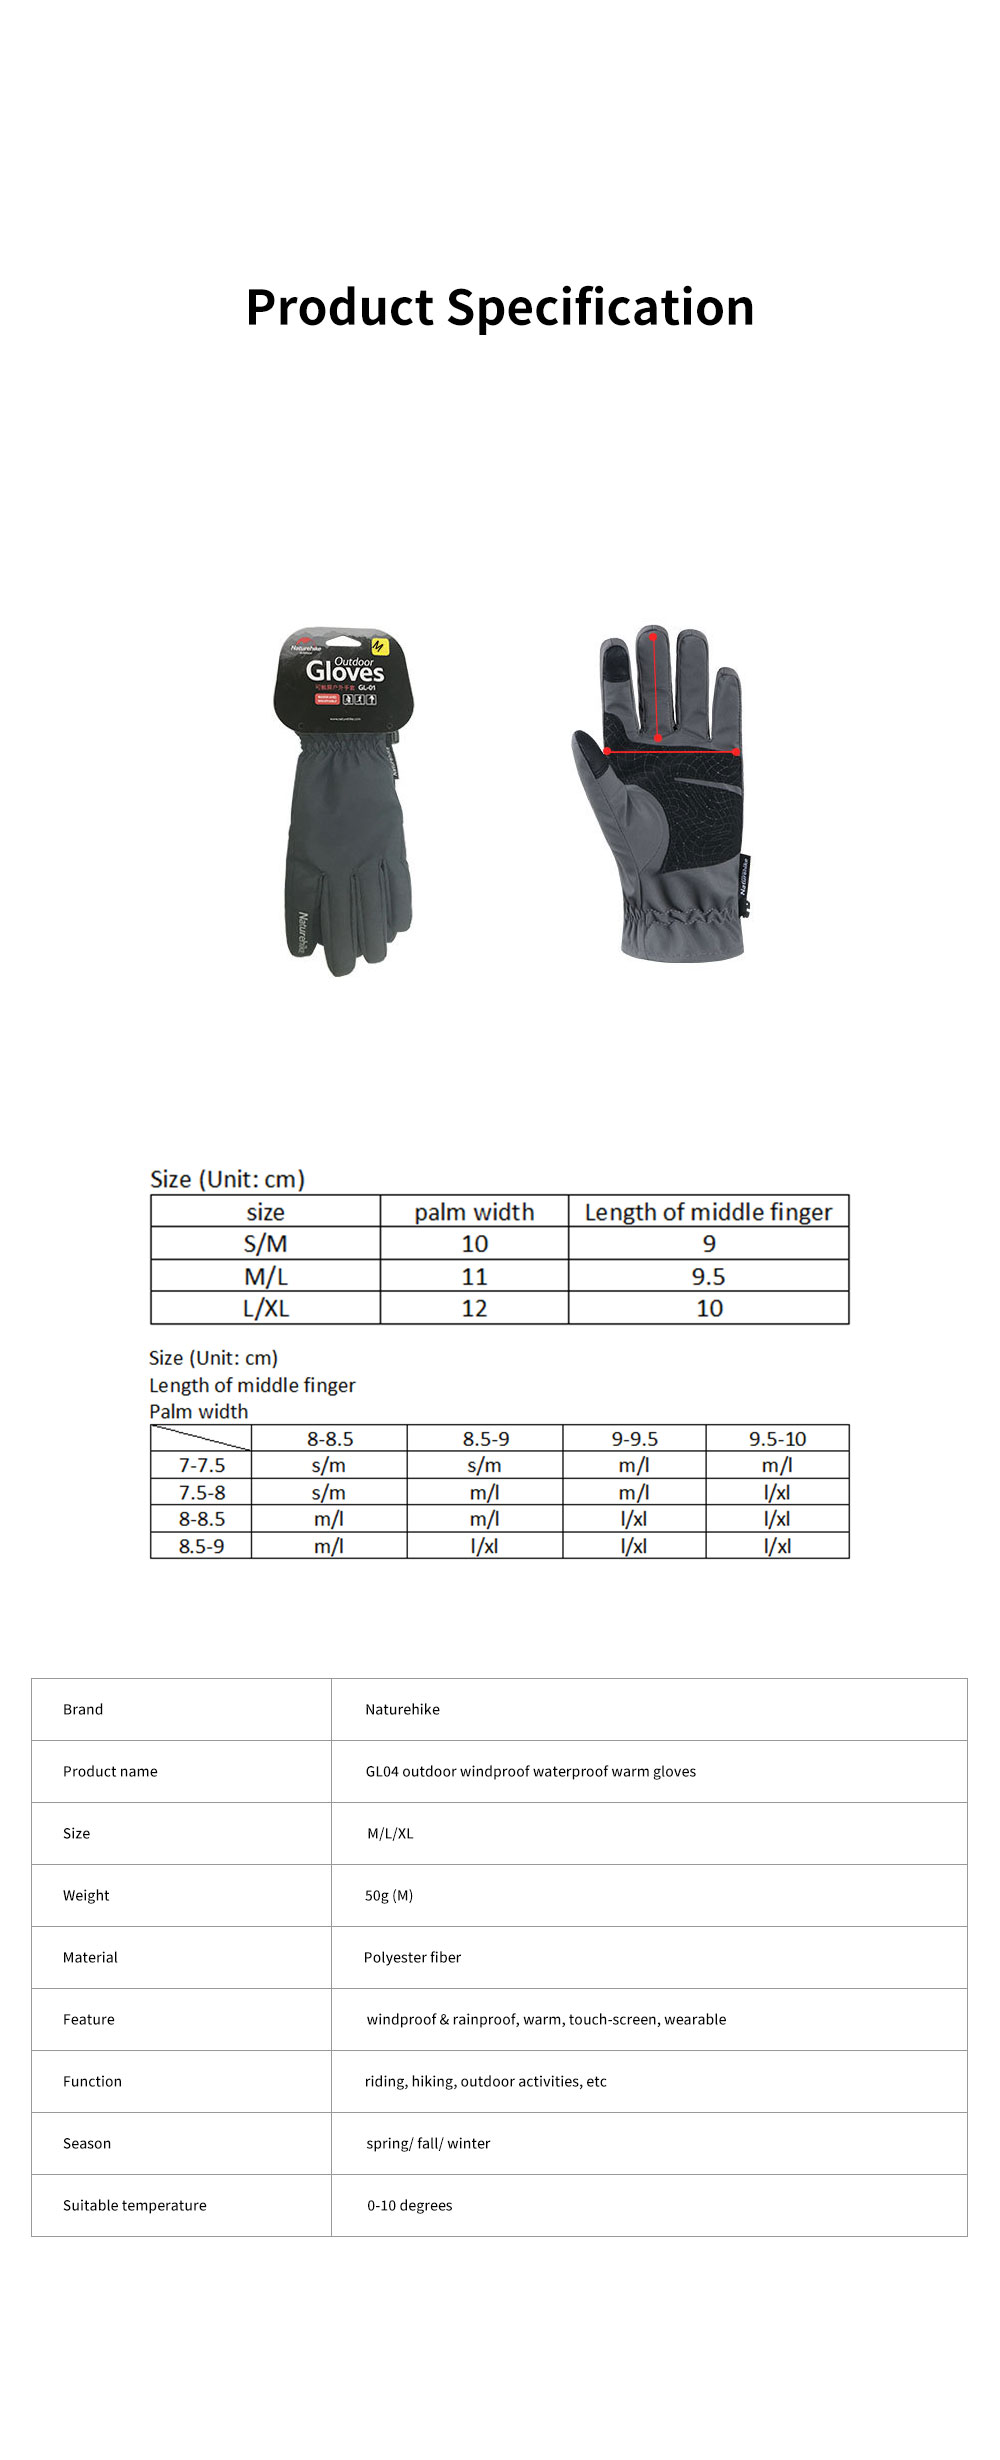 Naturehike GL04 Touch Screen Wind-proof Rain-proof Outdoor Warm Gloves High Quality Velvet Thicken Hand Protectors for Men and Women 12